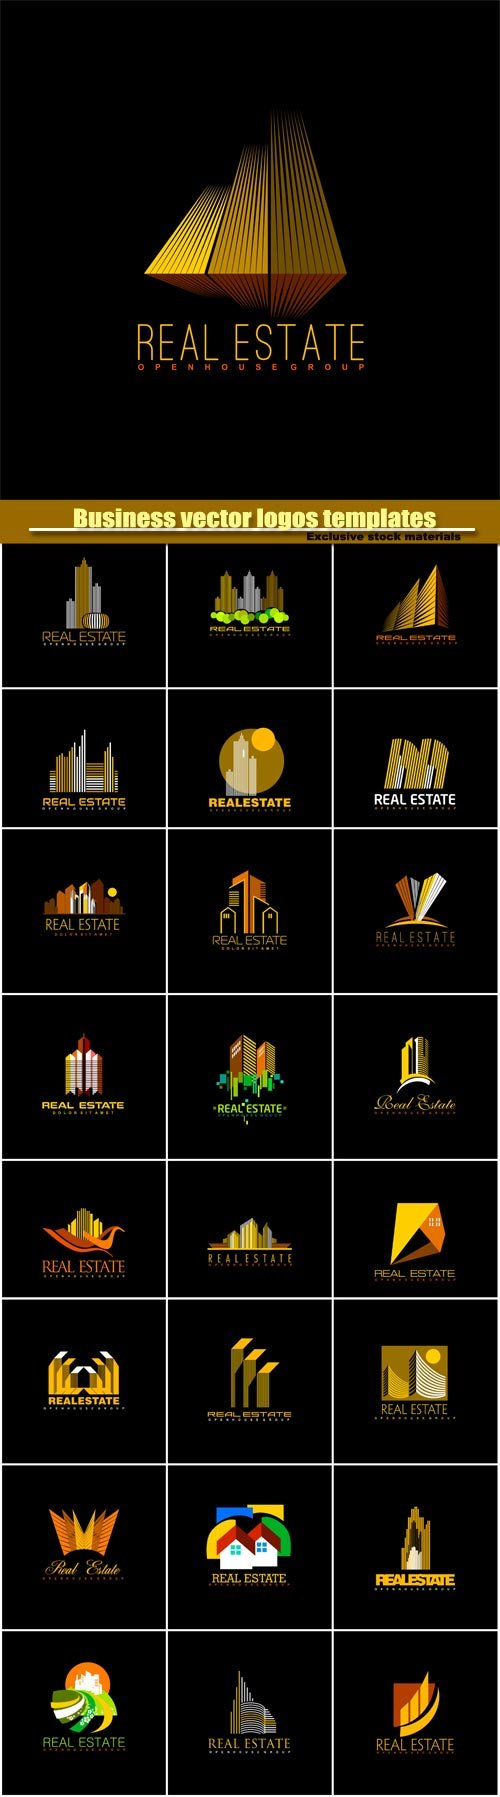 Business vector logos templates, creative gold figure icon #2